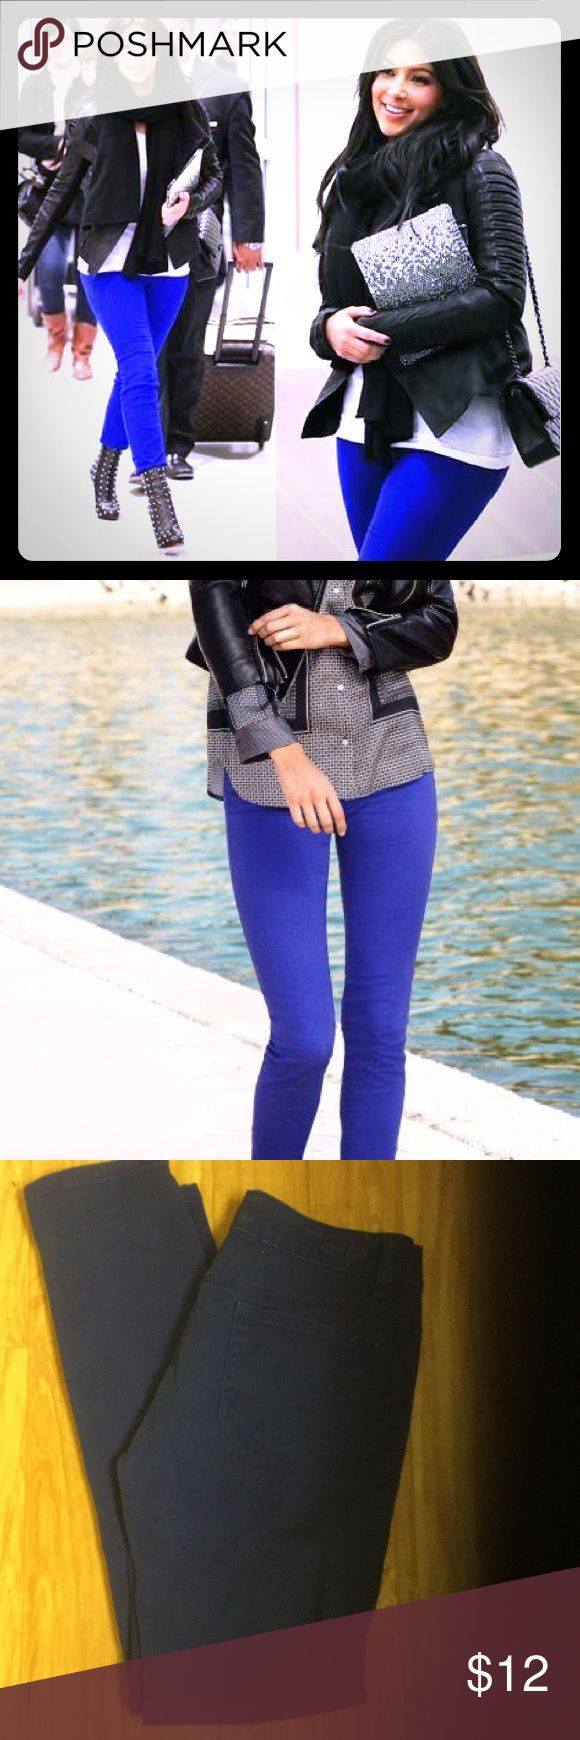 Celebrity style! royal blue jeggings 29 low rise Size 29 or juniors 9 low rise skinny jeans in gorgeous royal blue. As seen on Kim Kardashian and fashion bloggers! Color is slightly darker than first two pics but still fun and really pops! 29' waist. 30' inseam. Worn only once. Bundle to save✨ Jeans